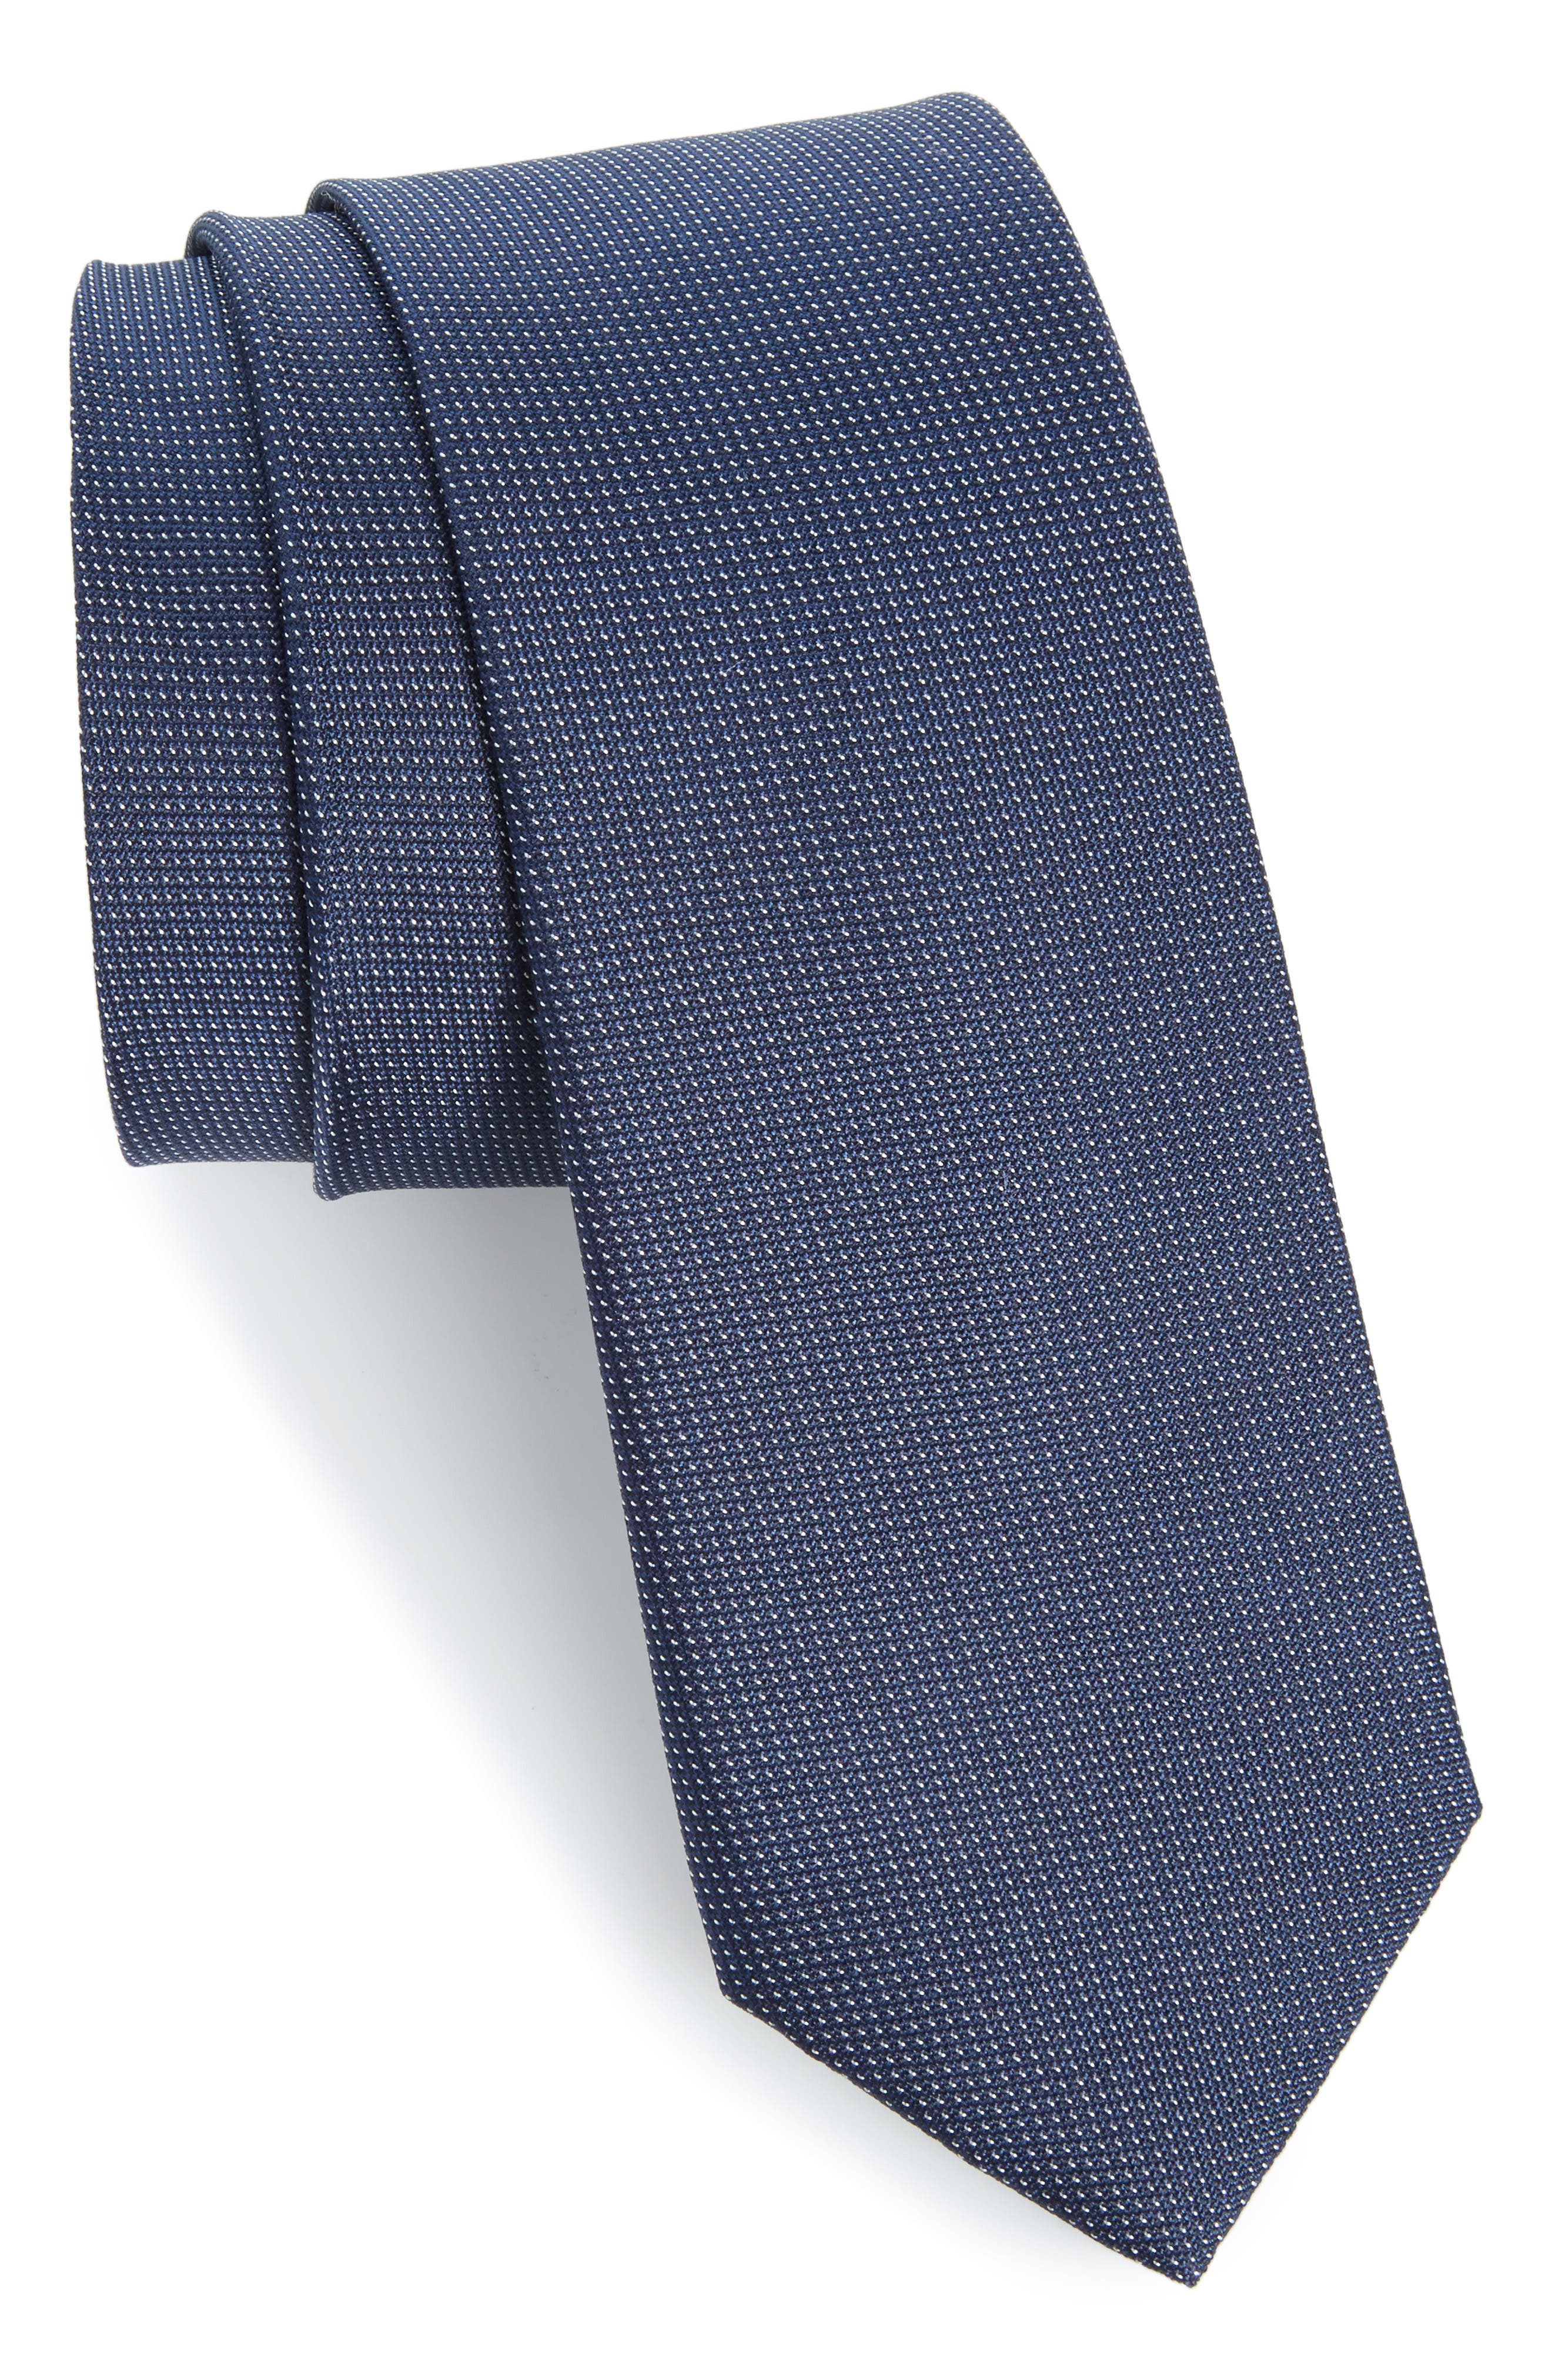 Eternity Unsolid Solid Silk Skinny Tie,                         Main,                         color, 411